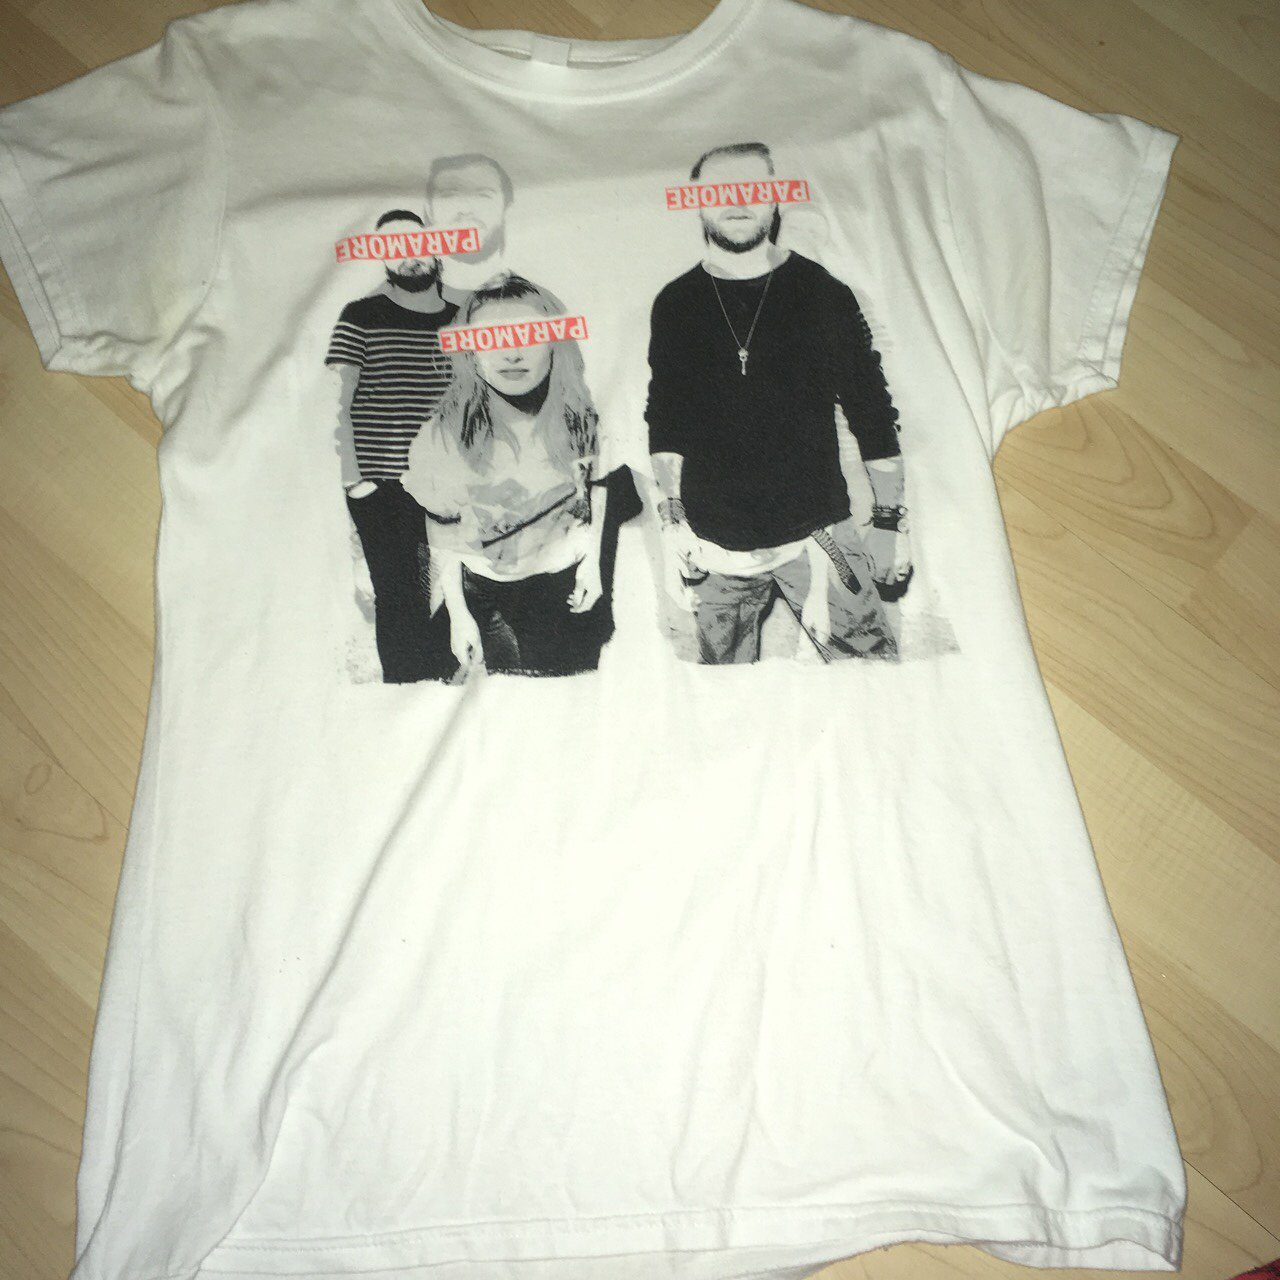 0c25d7d0eecaef Ladies paramore tshirt Size large Is